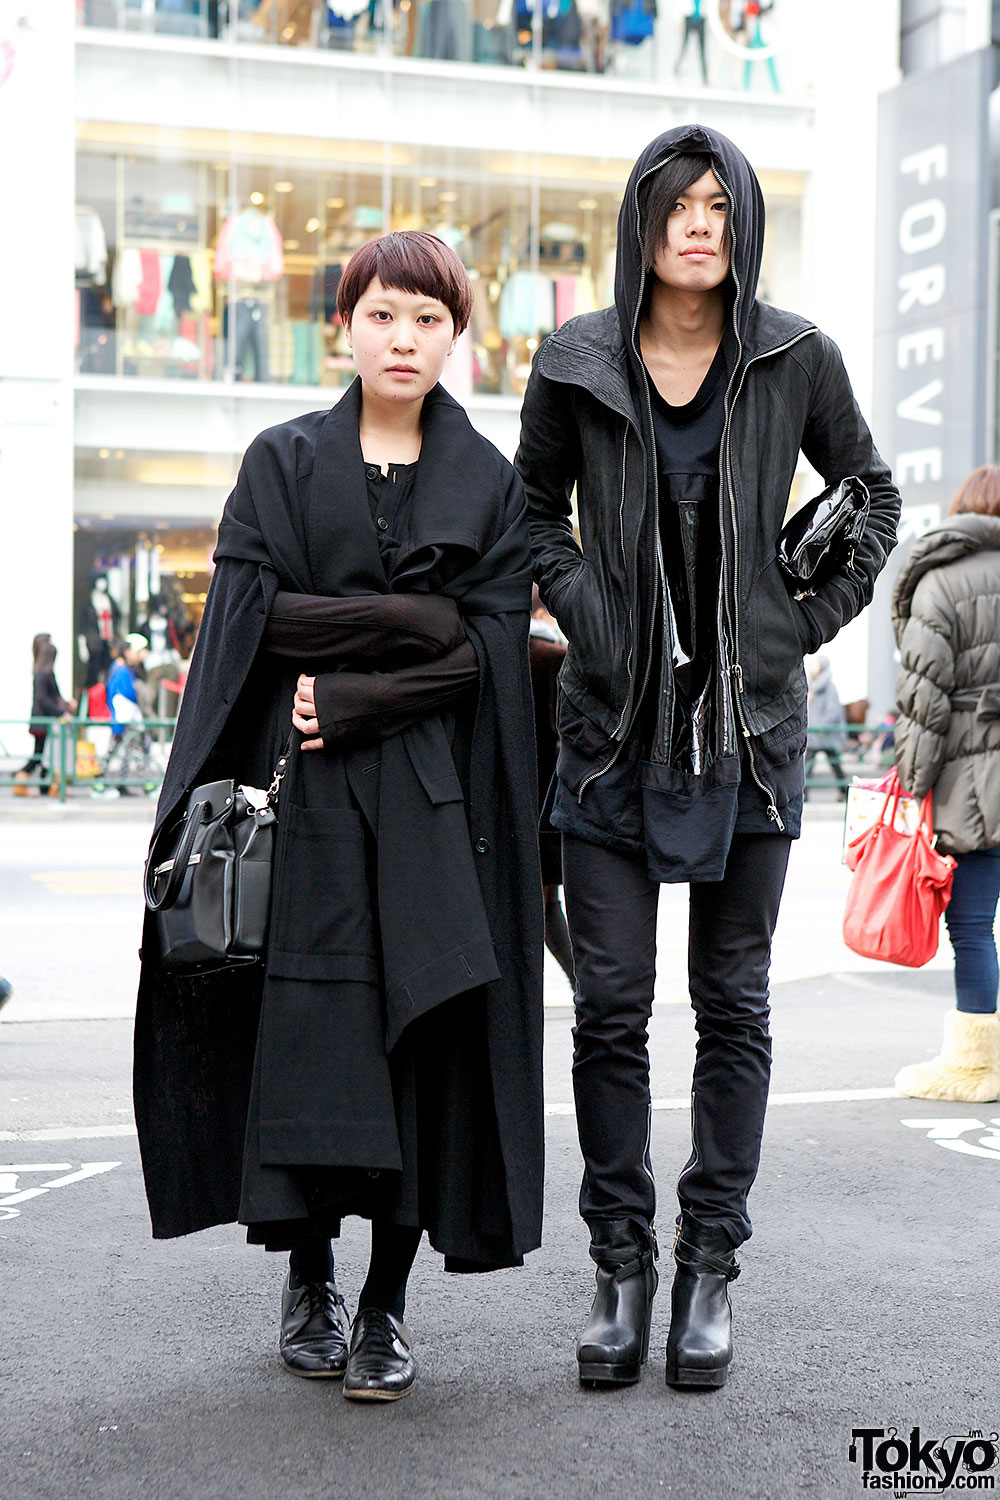 All Black Outfits W Rick Owens Limi Feu Comme Des Garcons In Harajuku